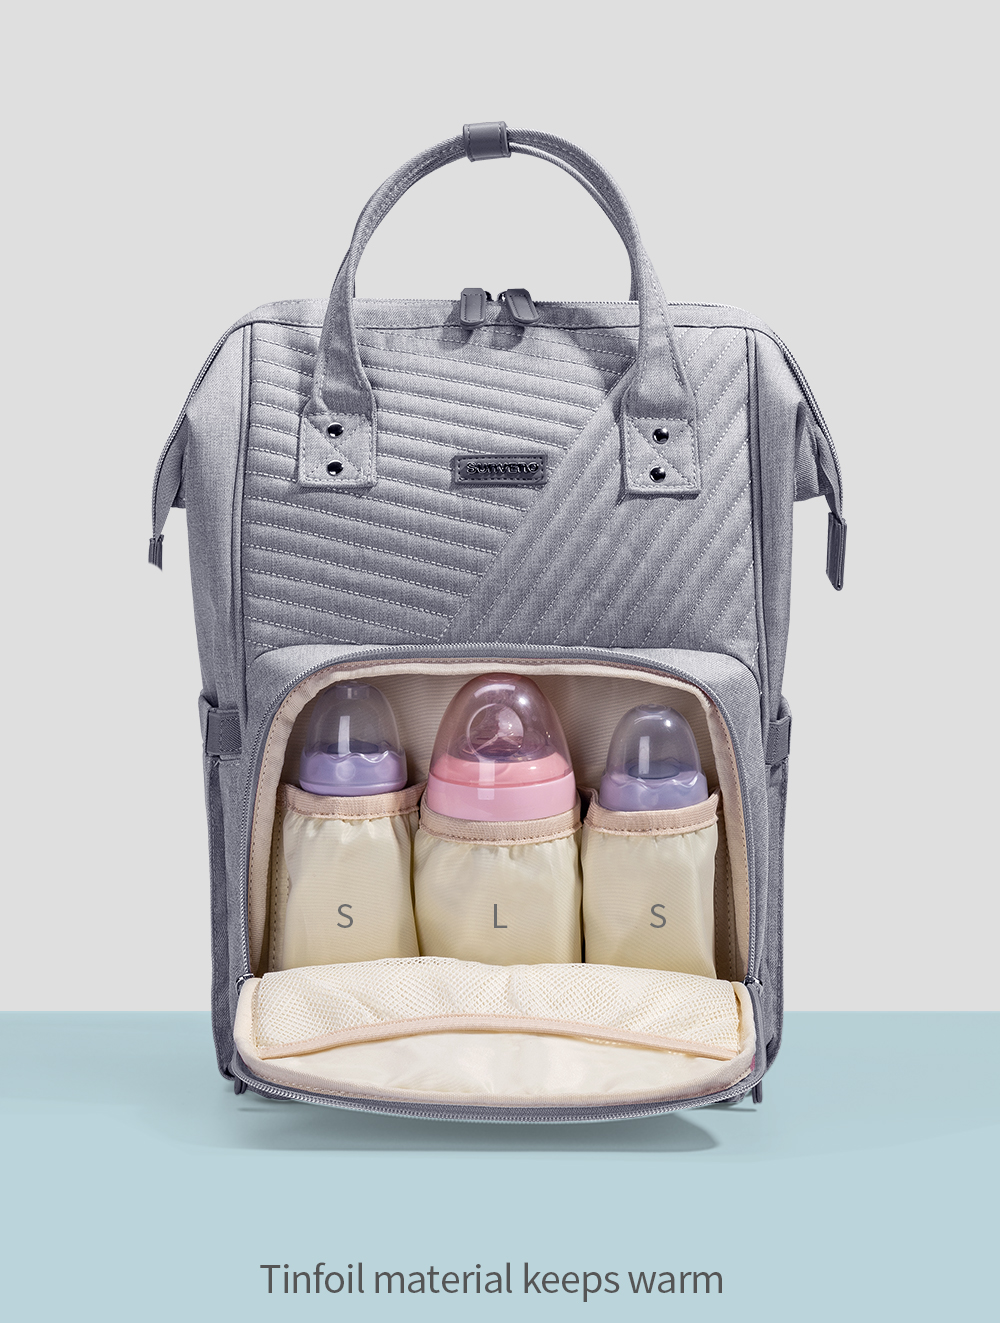 H805fb6f0d6aa40fb9d83fe7216991593s Sunveno Fashion Diaper Bag Backpack Quilted Large Mum Maternity Nursing Bag Travel Backpack Stroller Baby Bag Nappy Baby Care